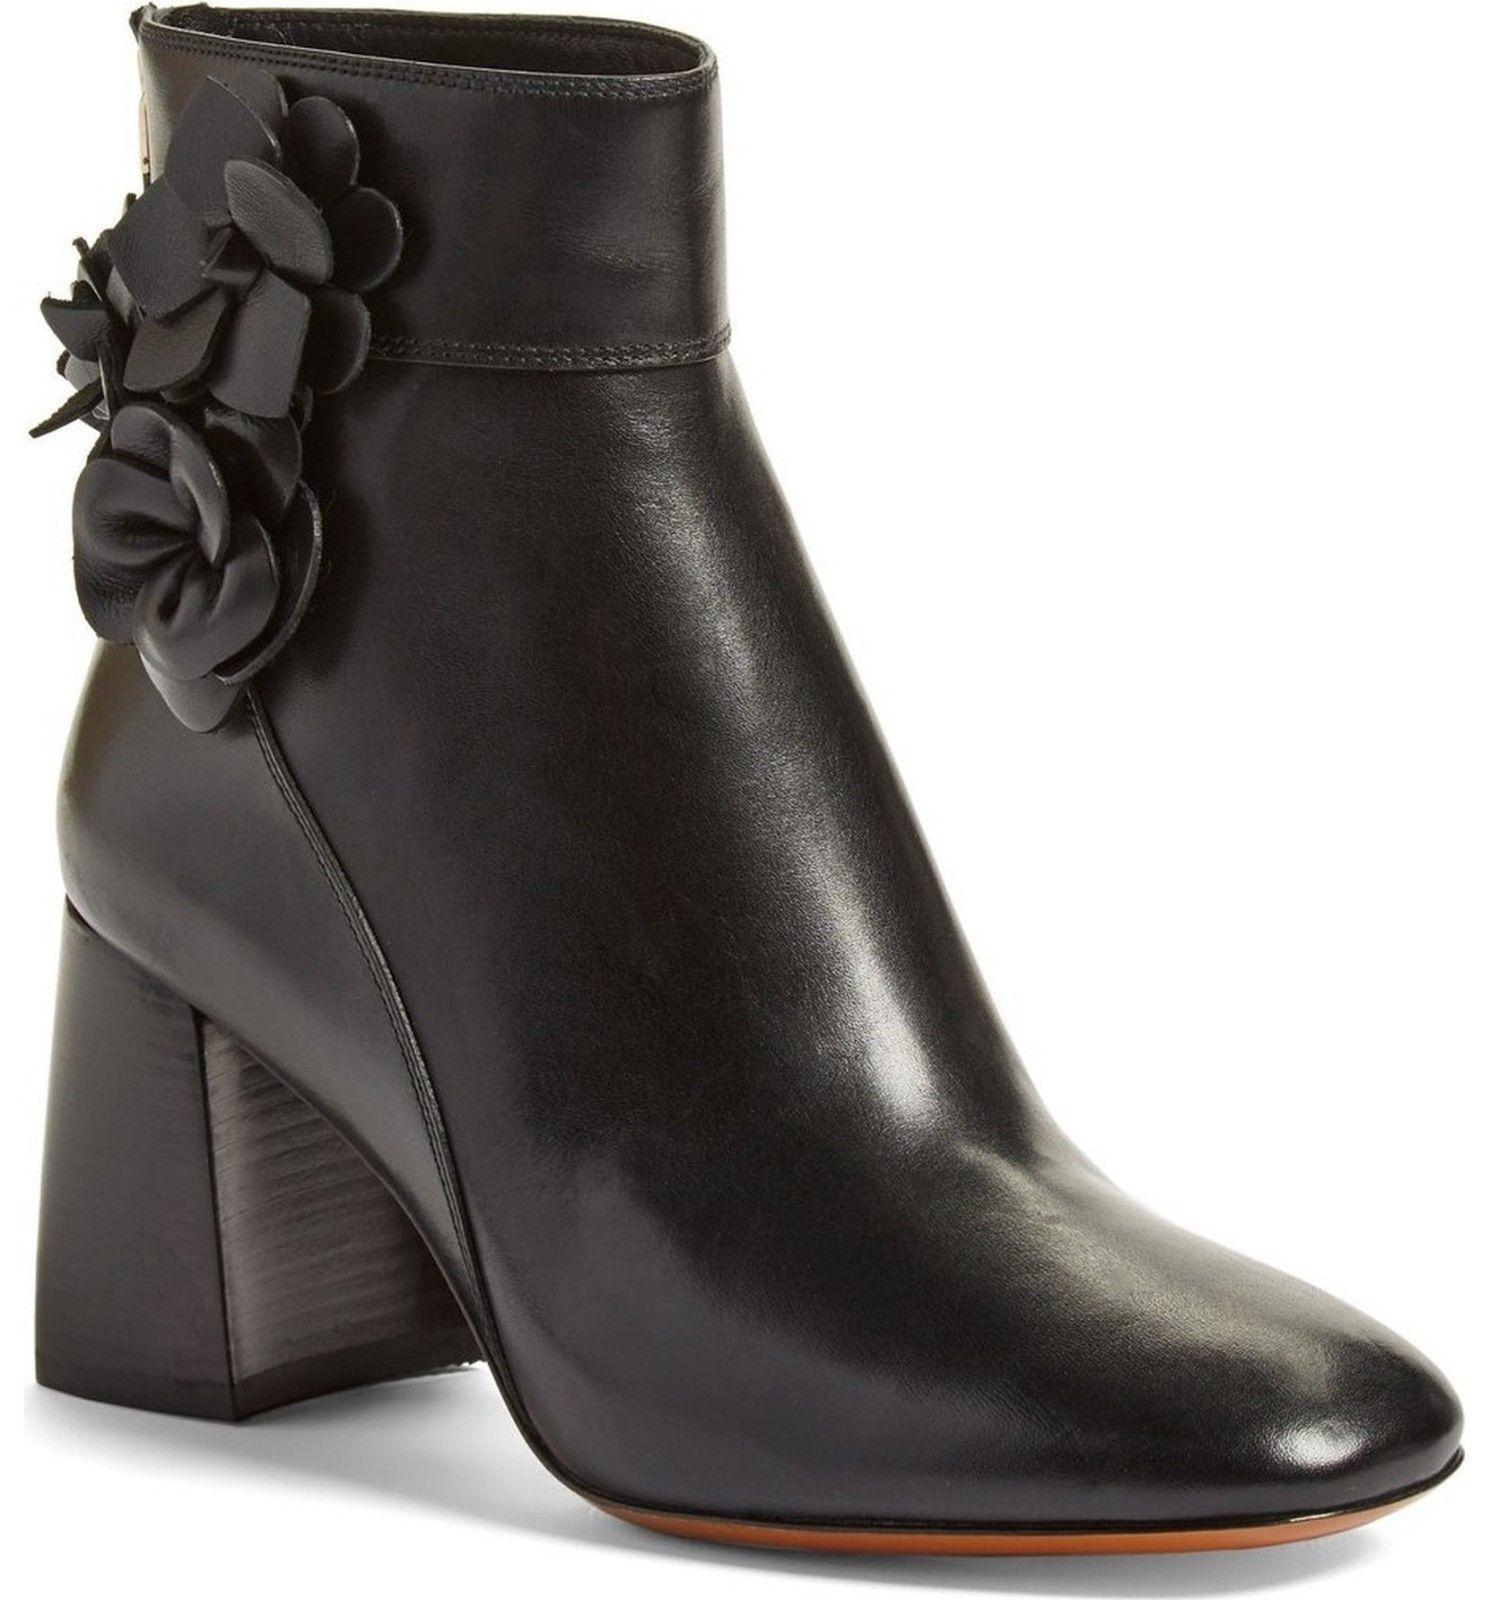 da626dfc16bb 6693. 6693. Previous.  495 Tory Burch Black Leather Blossom Block Heel Boots  Ankle Booties 10.5 ·  495 Tory ...